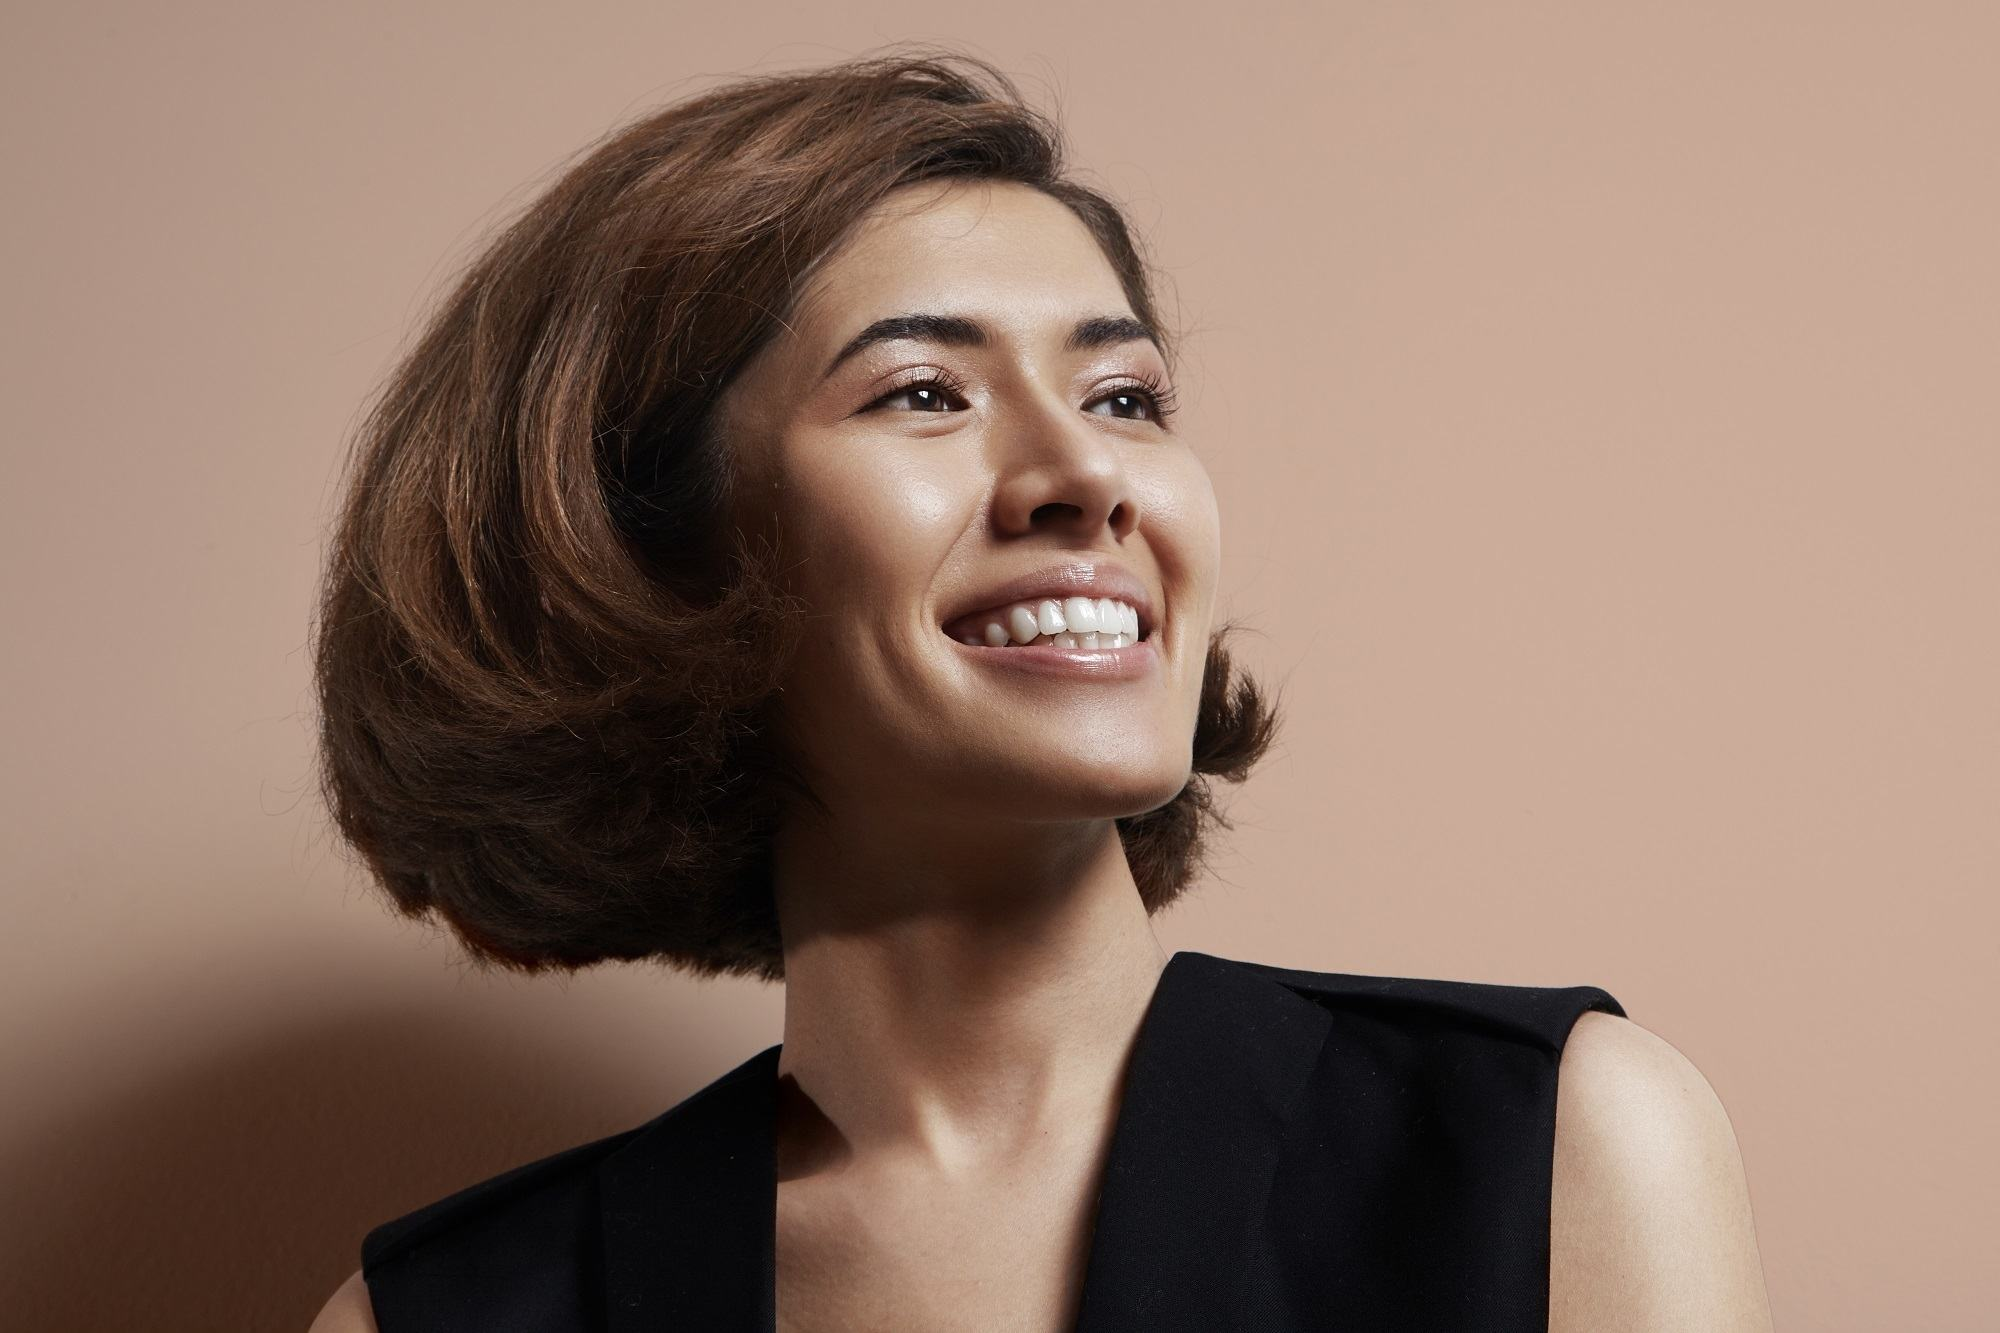 Chin length hairstyles: Closeup shot of a woman wearing black sleeveless shirt with short brown hair in chin length bouncy bob against brown background